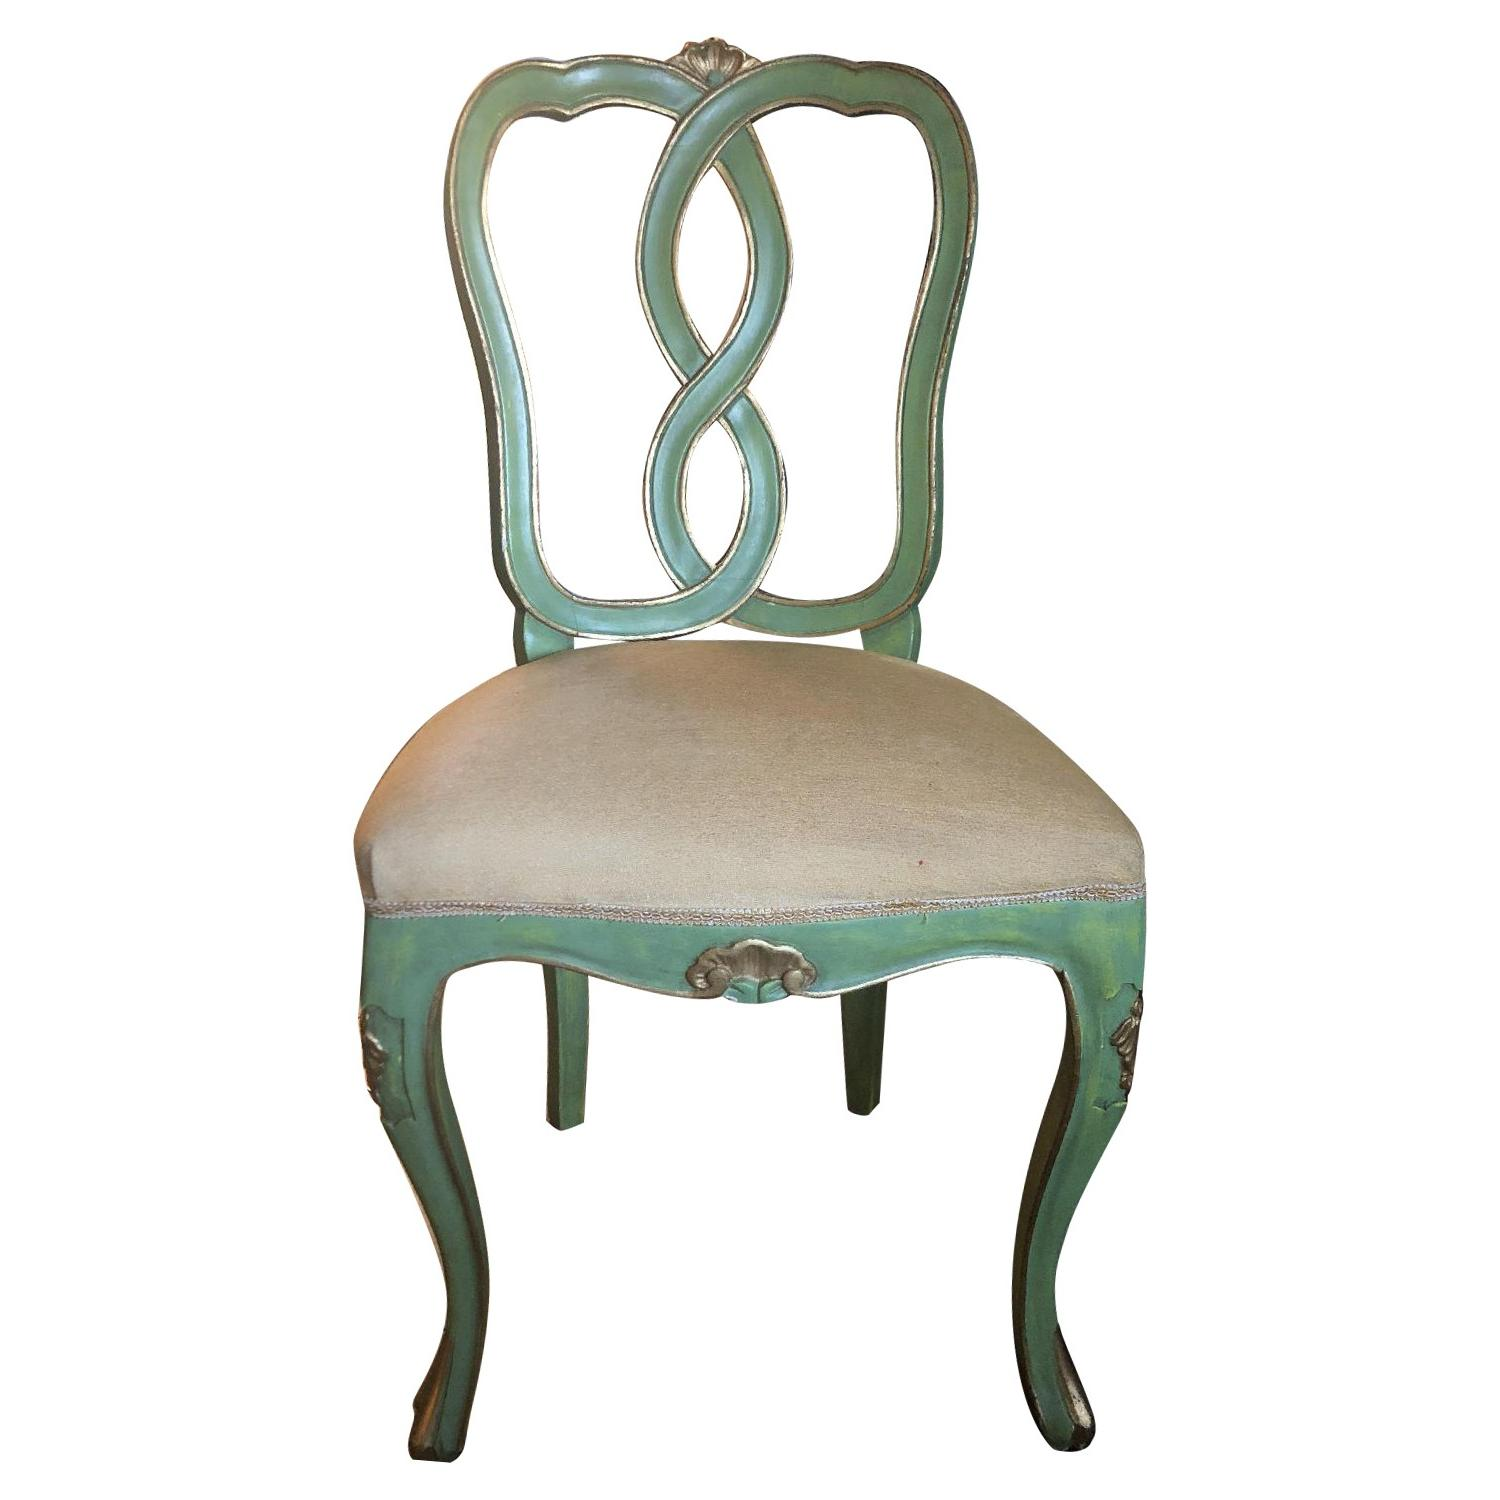 Vintage Green/Gold Chairs